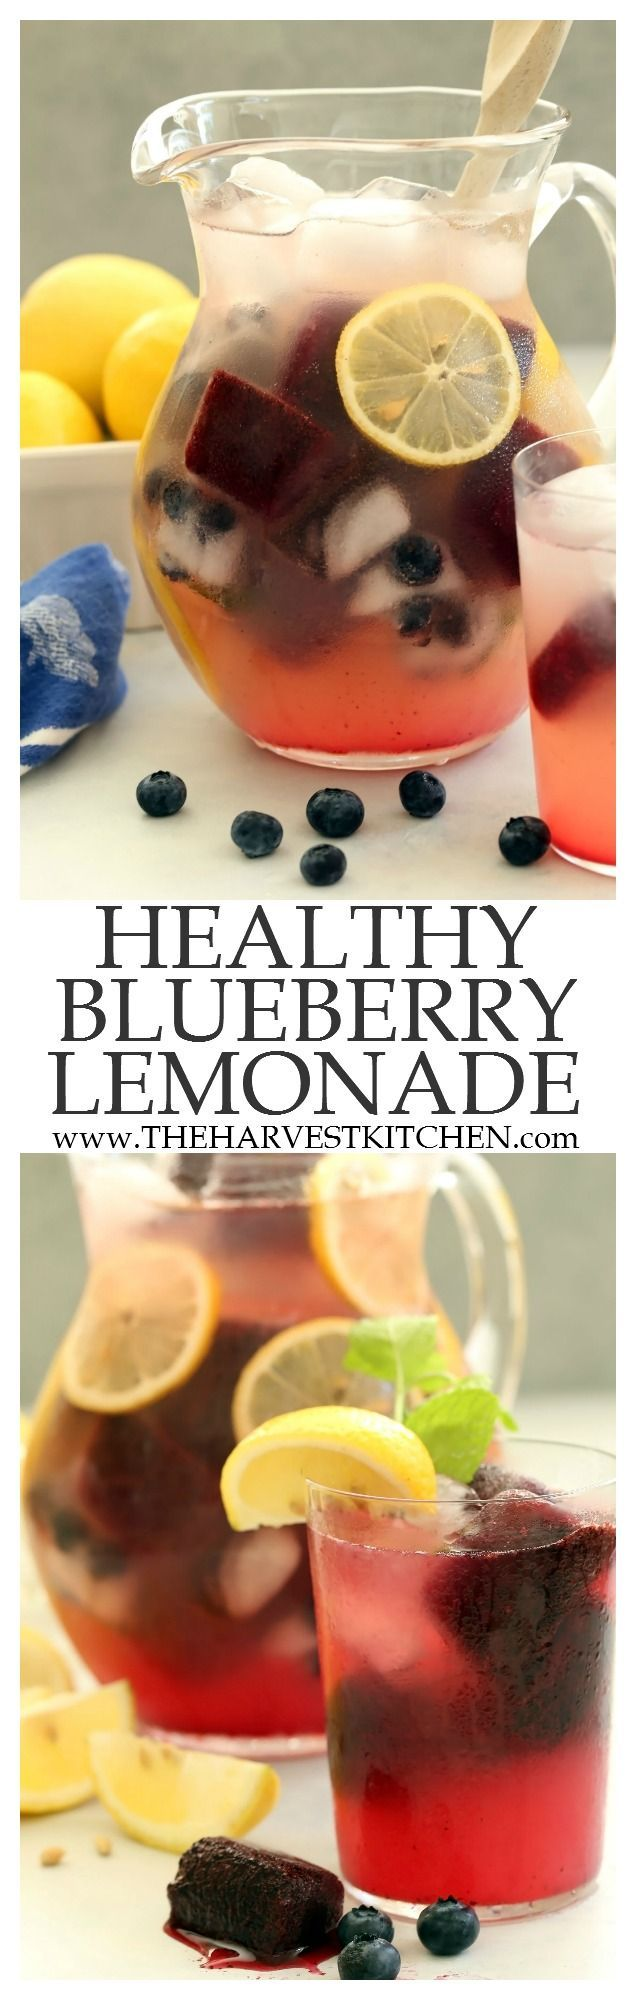 This Healthy Blueberry Lemonade is a perfect way to beat the summer heat! It's refreshing and delicious, lightly sweetened with honey and loaded with antioxidant properties. | detox drink recipes | | sugar-free lemonade | | honey sweetened lemonade | | clean eating | | healthy recipes |